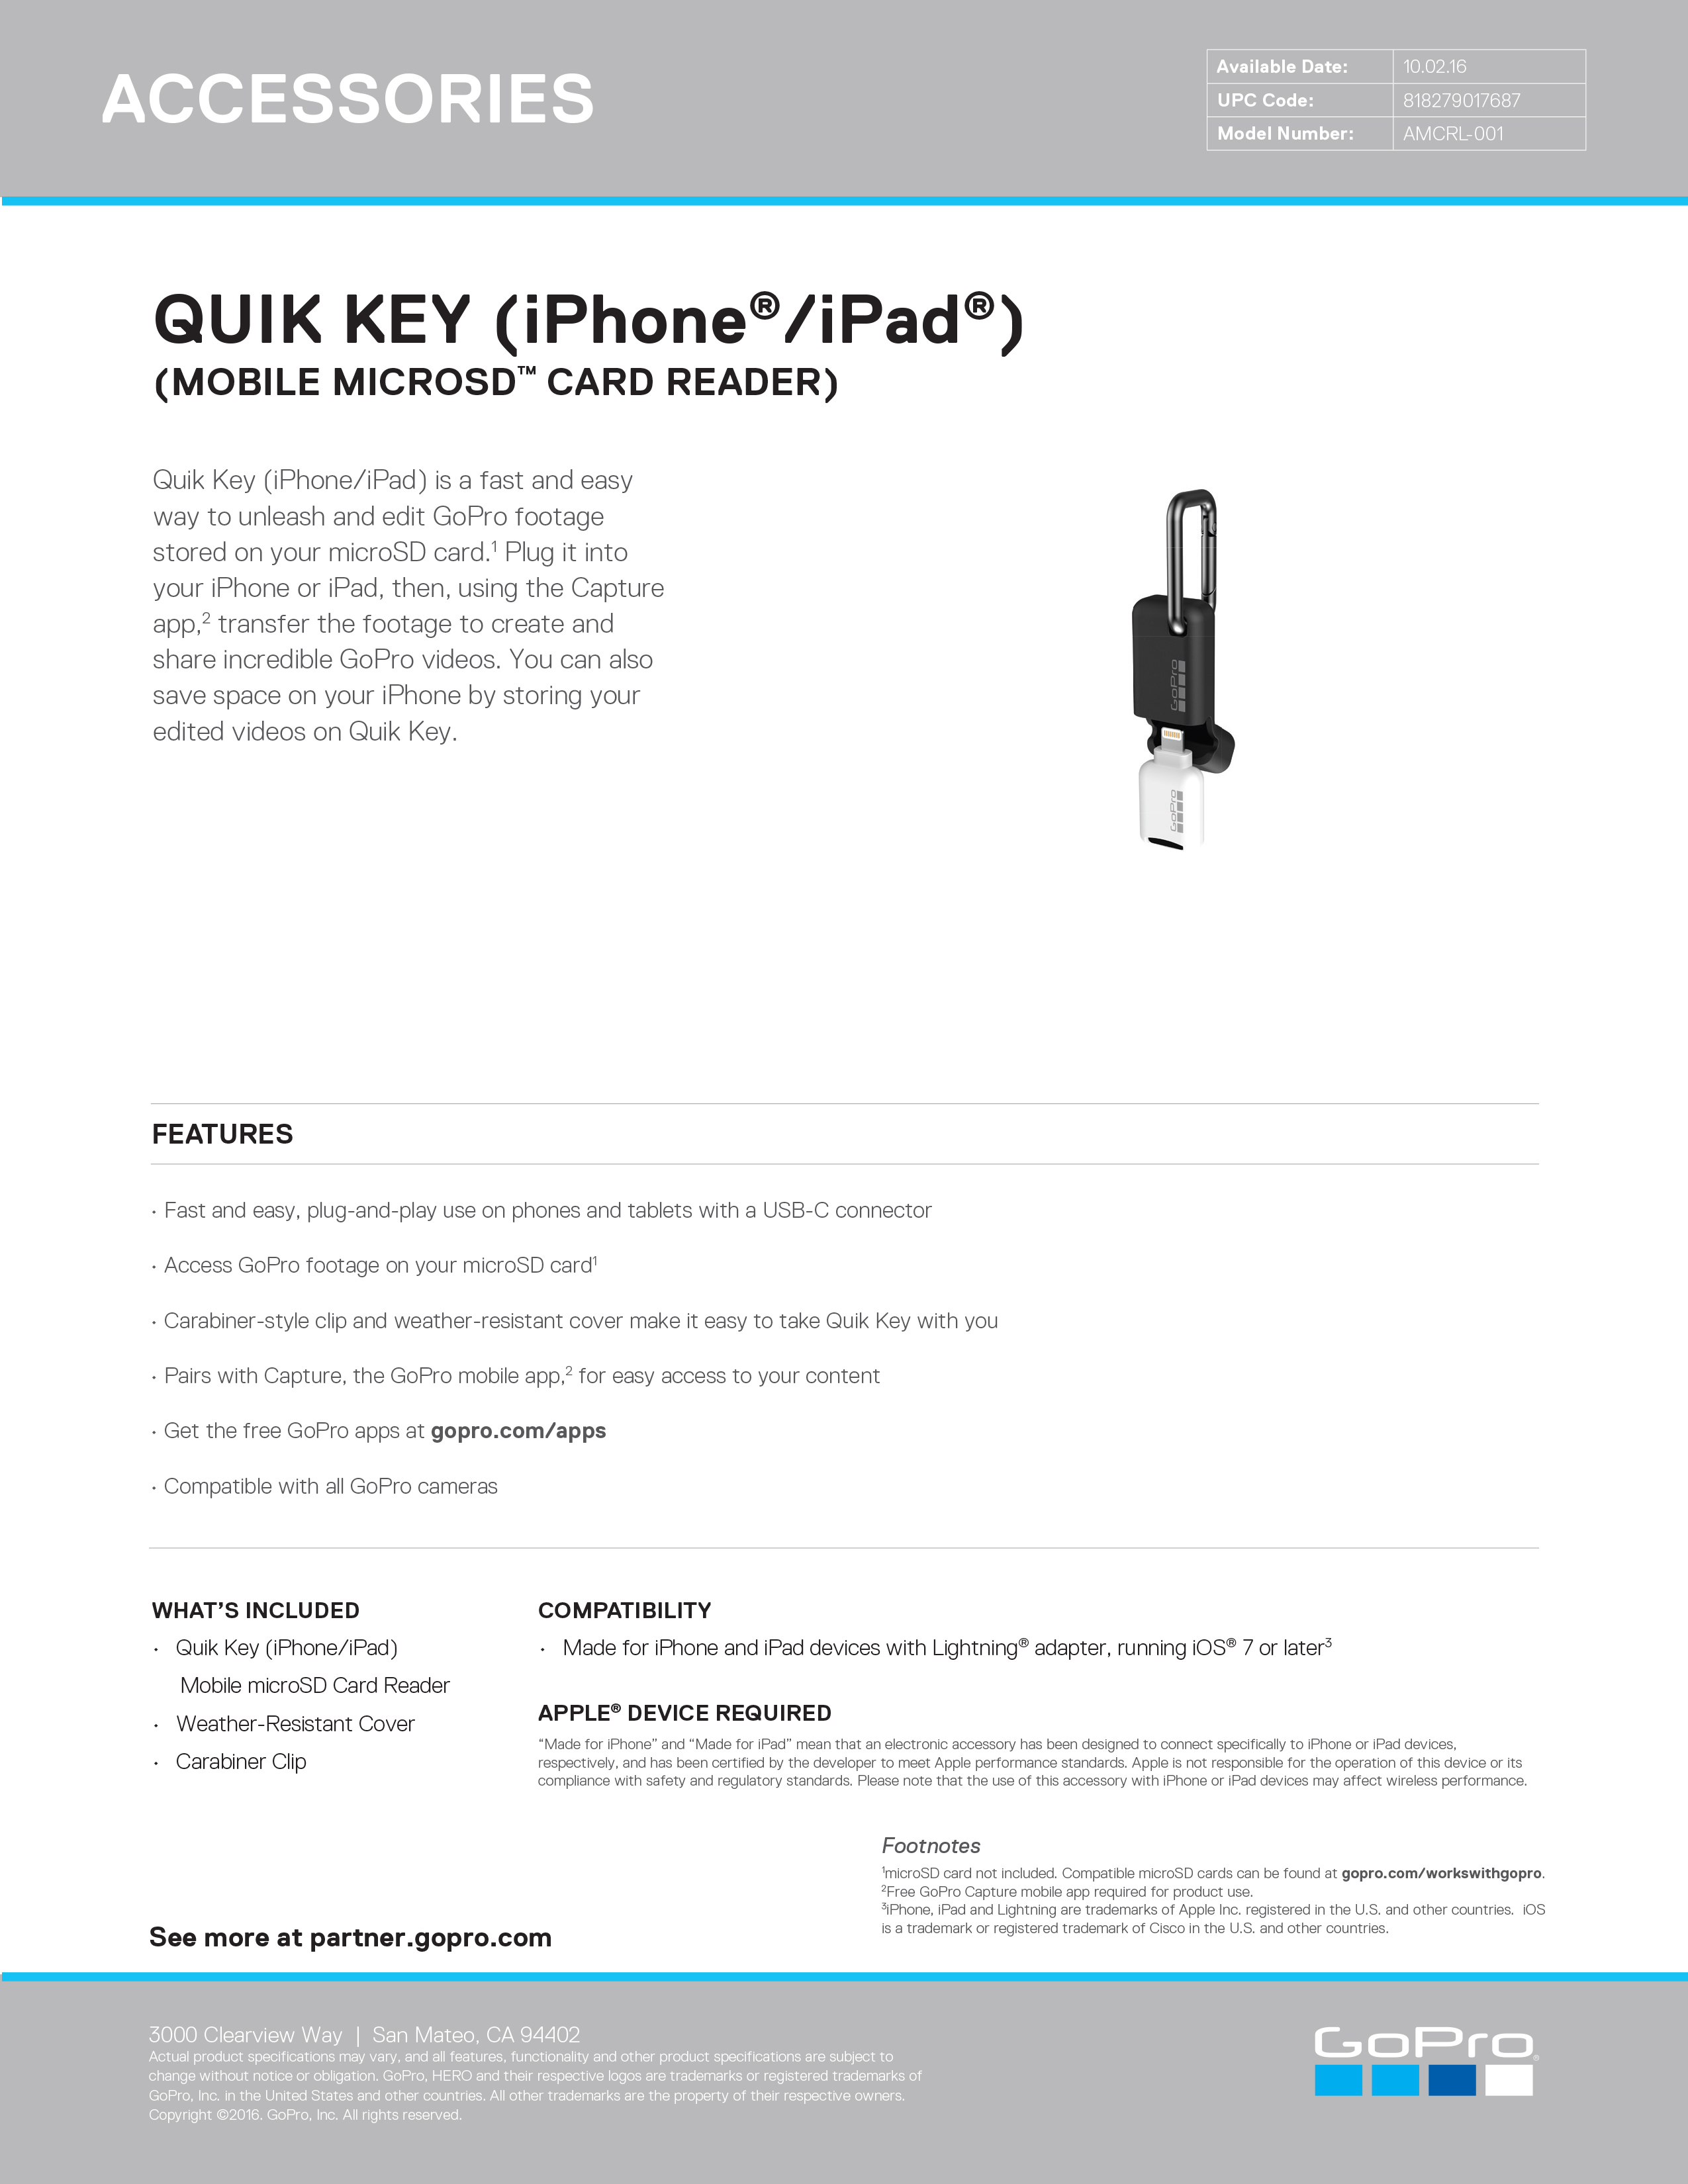 27431252 QUIK KEY iPhone iPad MOBILE MICROSD CARD READER Sell Sheet site